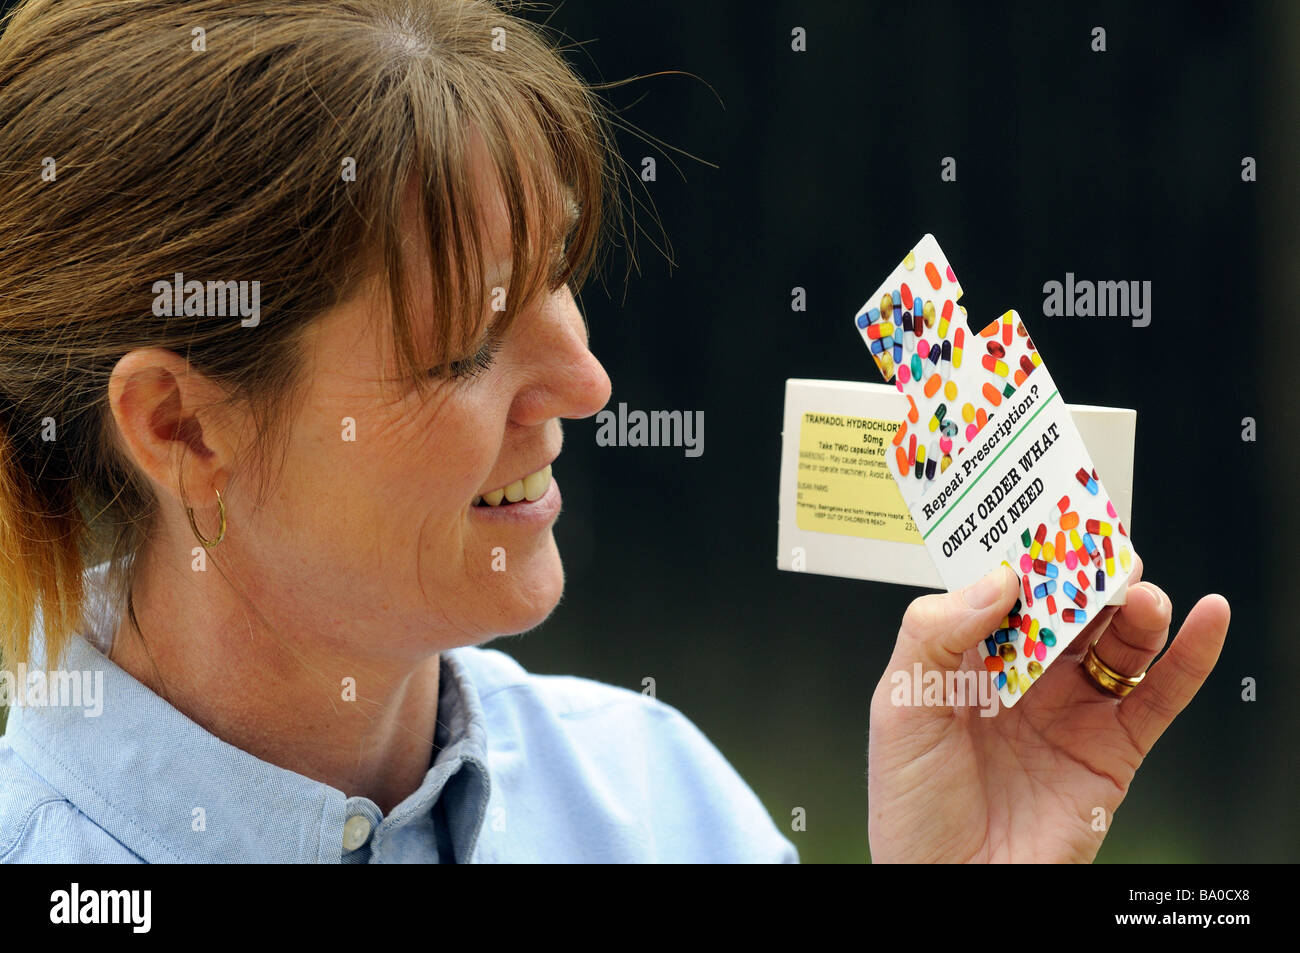 Repeat prescription then only order what tablets or medicine is required notice woman holding coloured card cutout - Stock Image